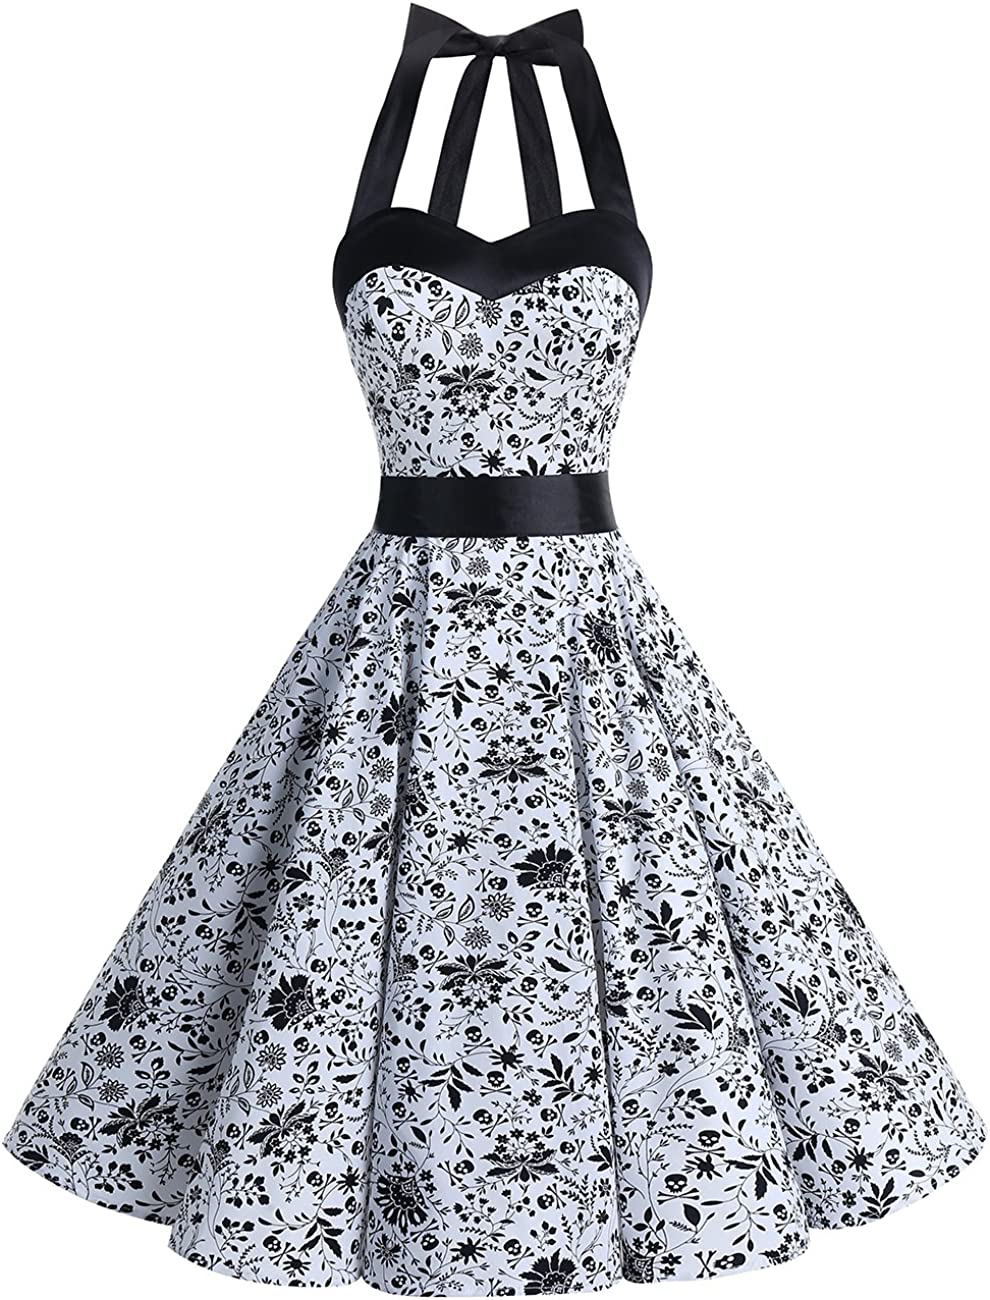 TALLA XXL. Dresstells® Halter 50s Rockabilly Polka Dots Audrey Dress Retro Cocktail Dress White Skull XXL